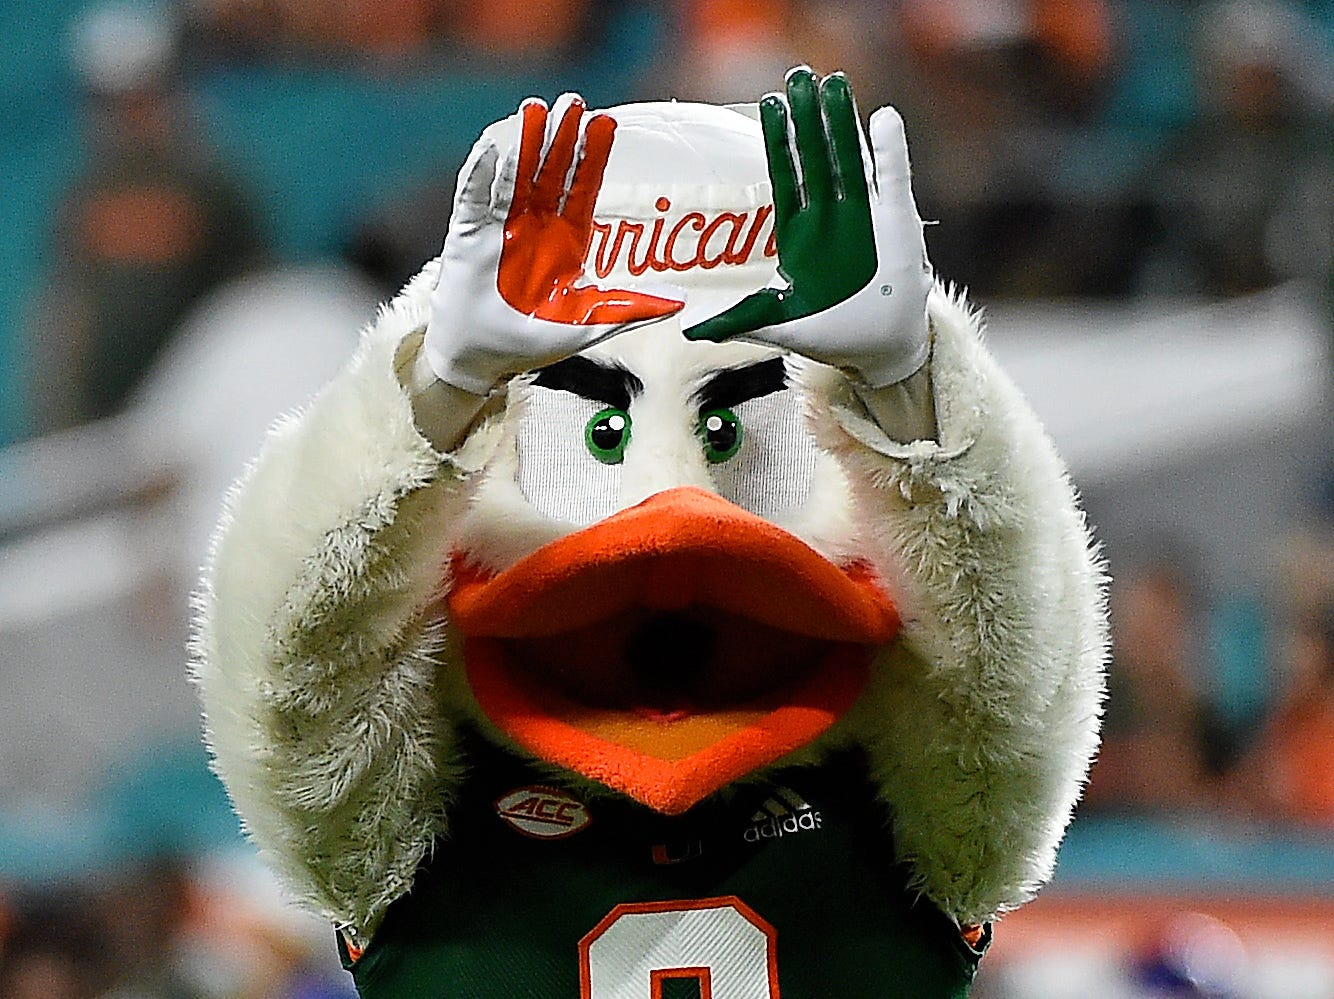 Week 2: Miami Hurricanes mascot Sebastian celebrates after a touchdown against the Savannah State Tigers during the second half at Hard Rock Stadium.